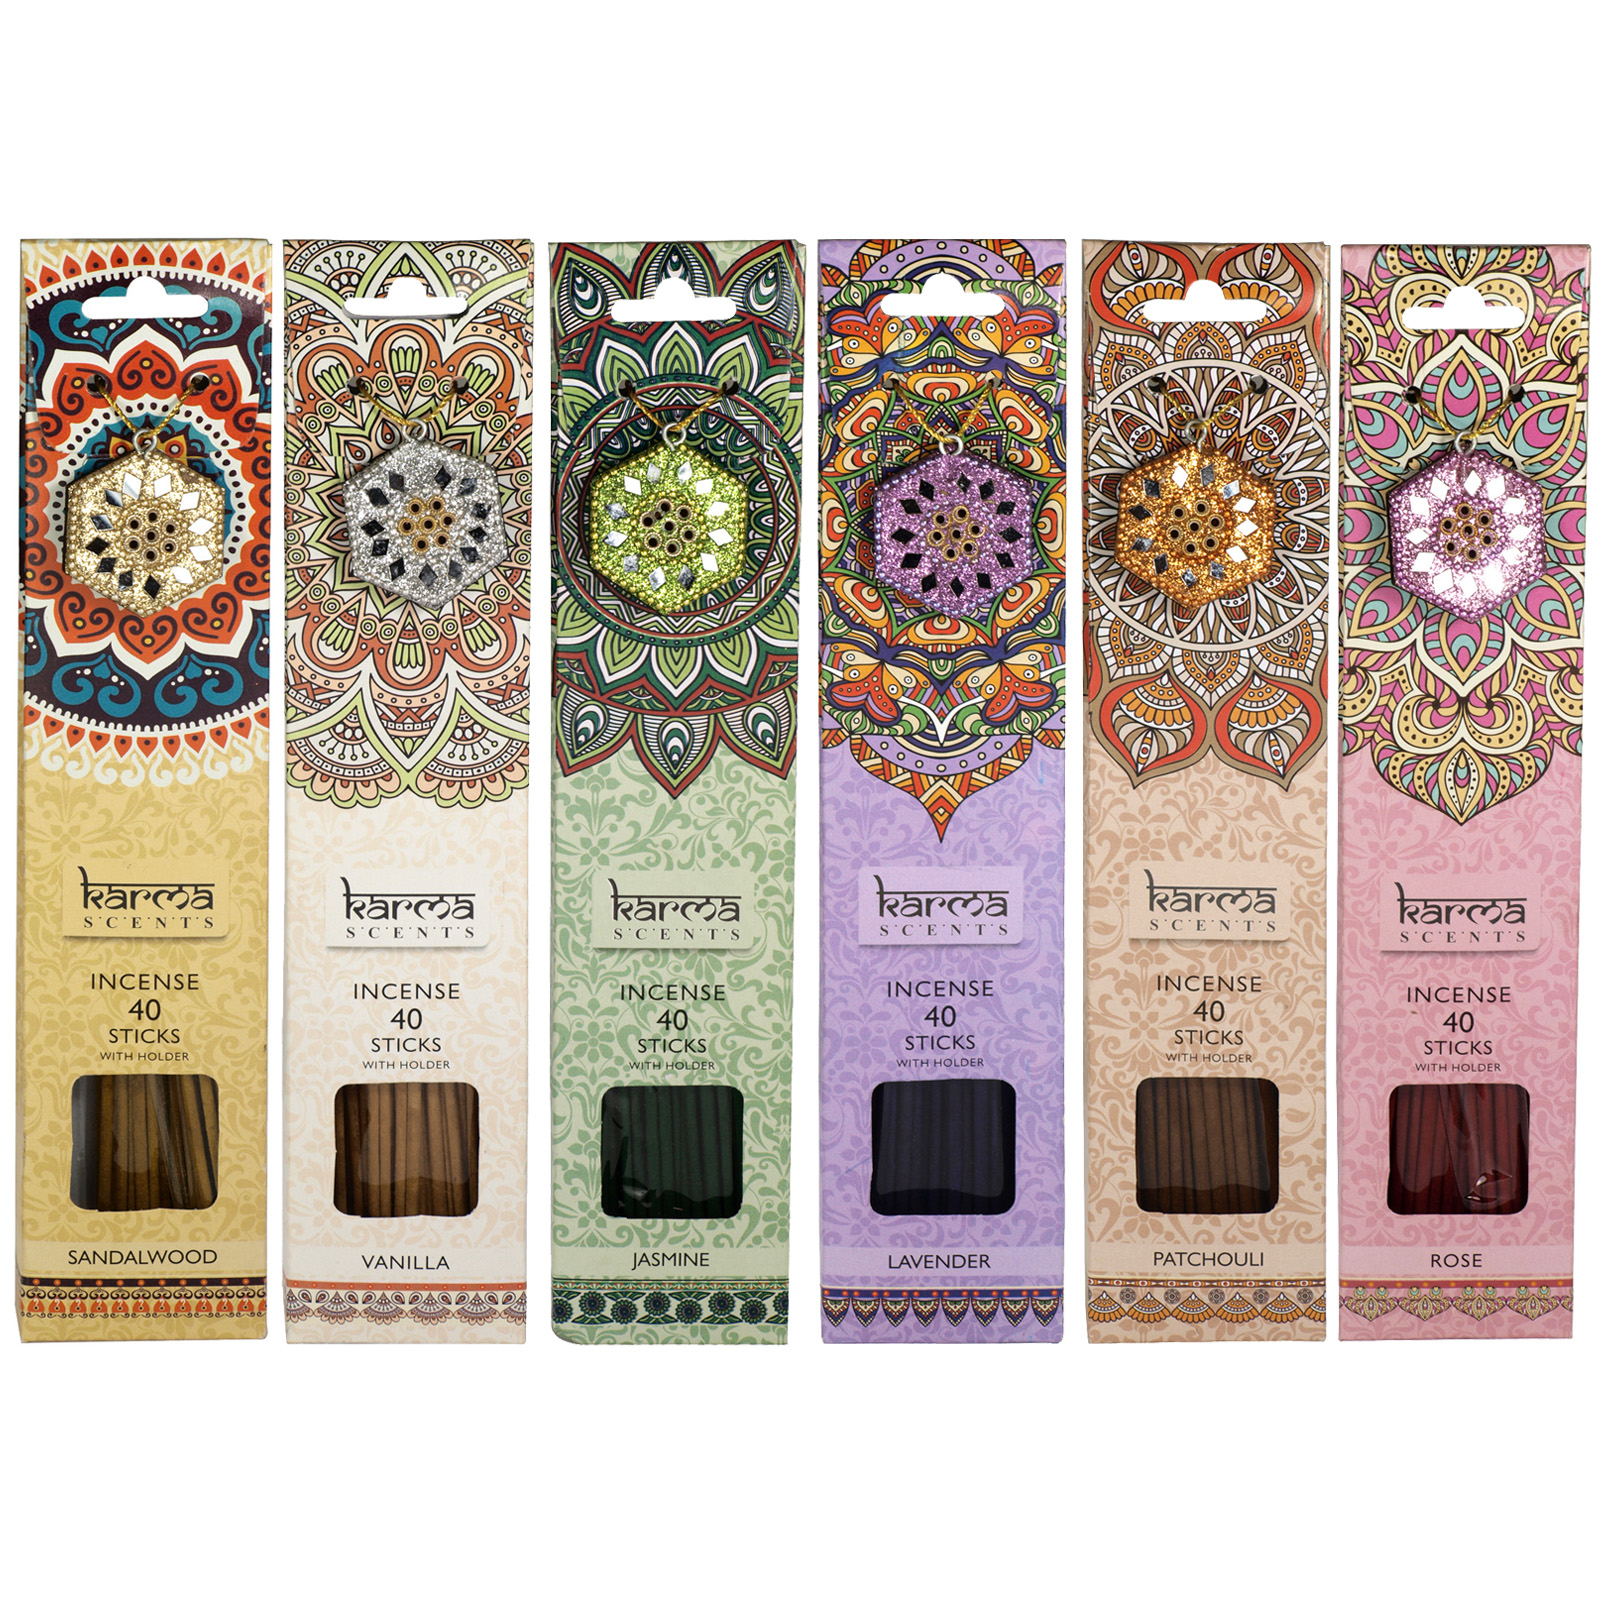 SIL KARMA 40 INCENSE STICKS+HOLDER 6 ASSORTED